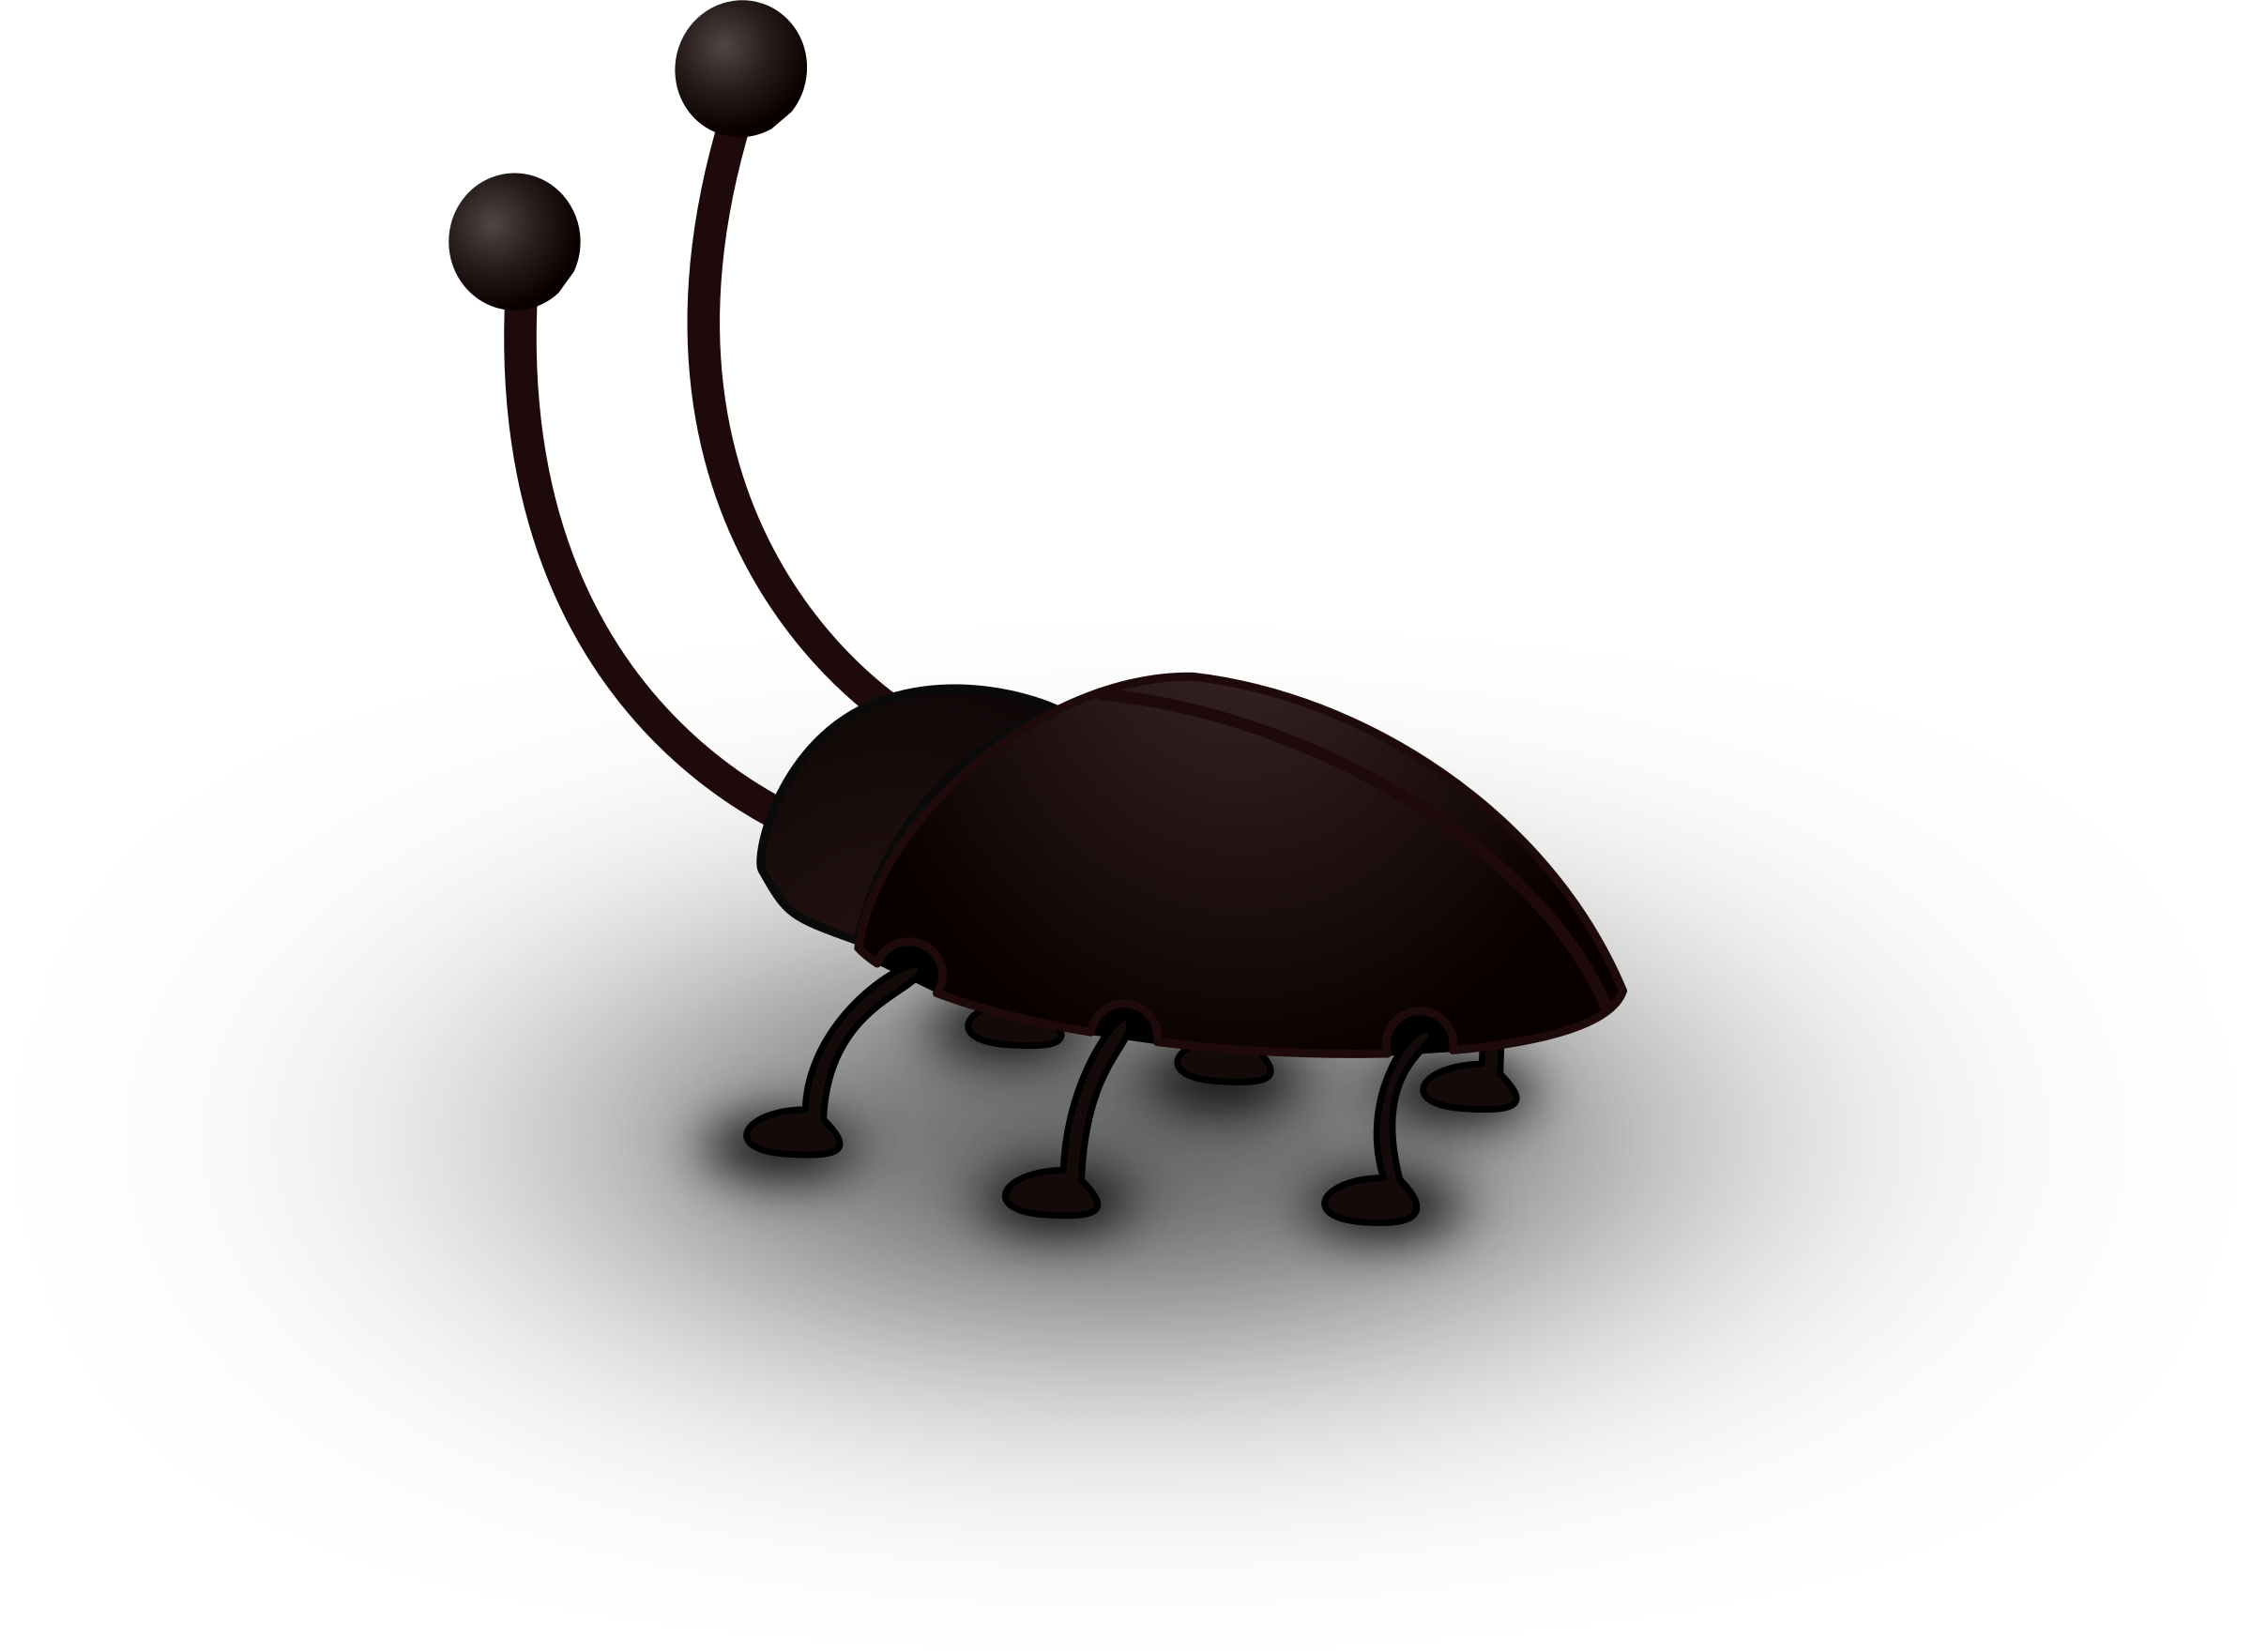 clipart royalty free stock Cockroach big image png. Animal clipart insect.